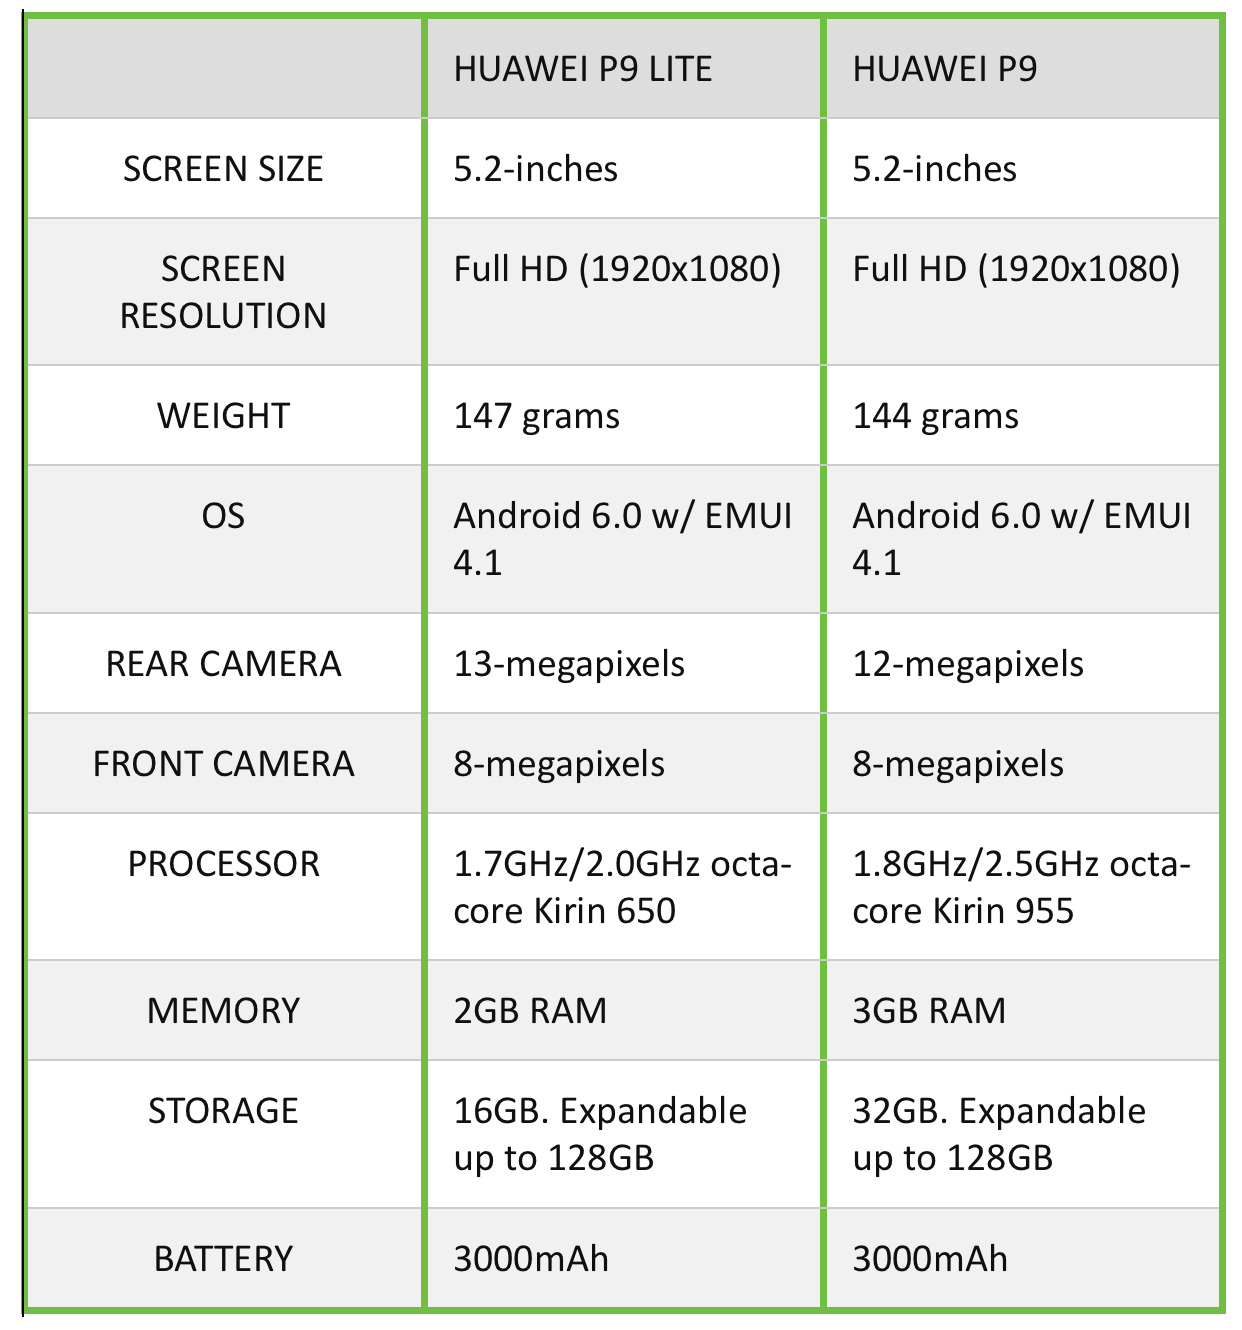 huawei p9 lite specification. huawei p9 vs lite specification